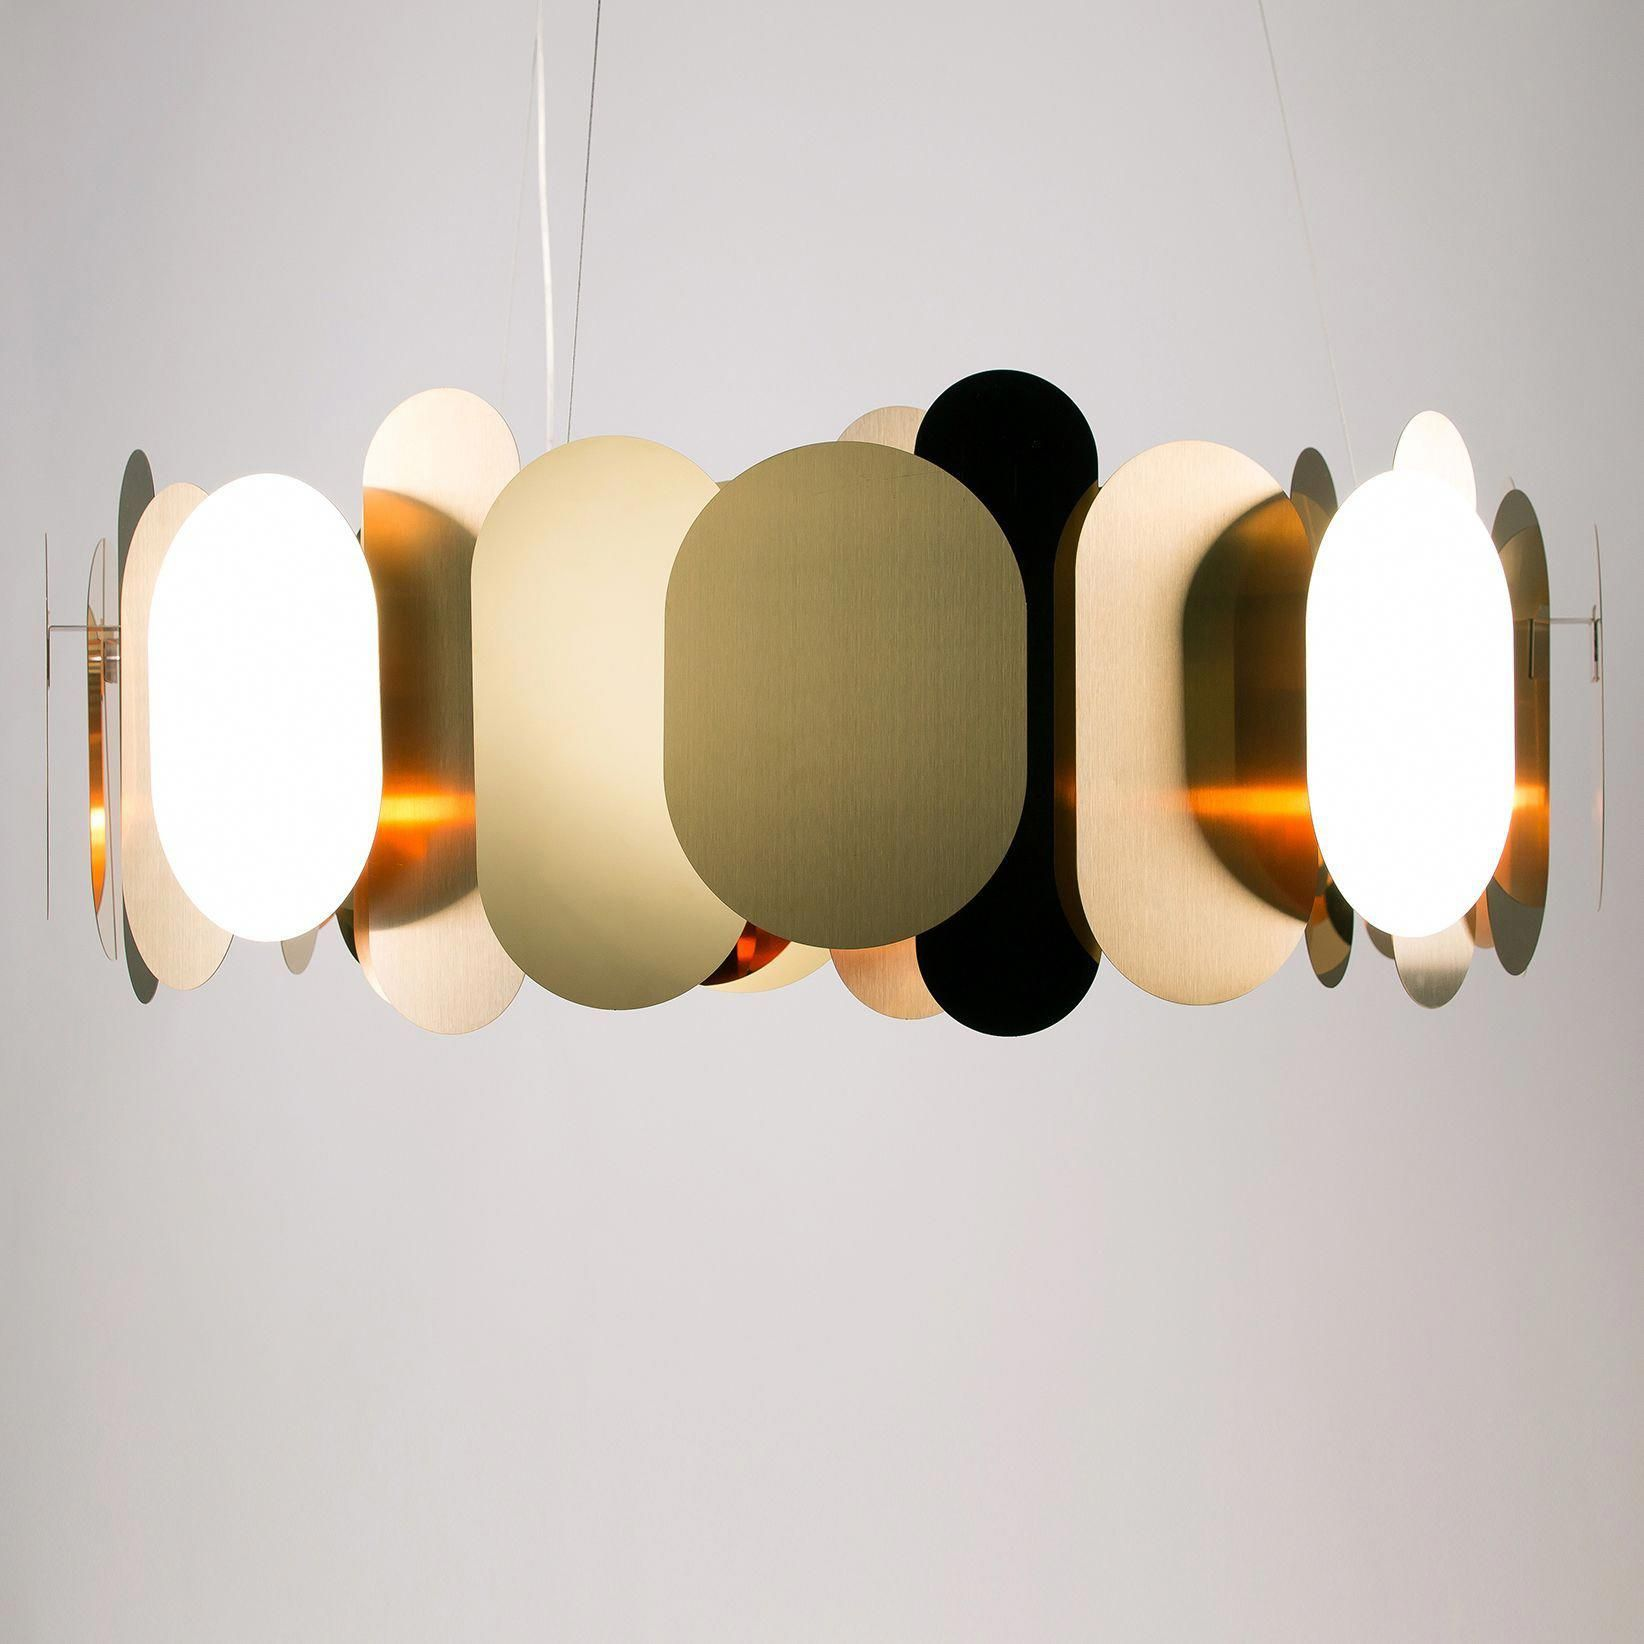 The Panel Pendant Uses Both Polished And Matte Surfaces To